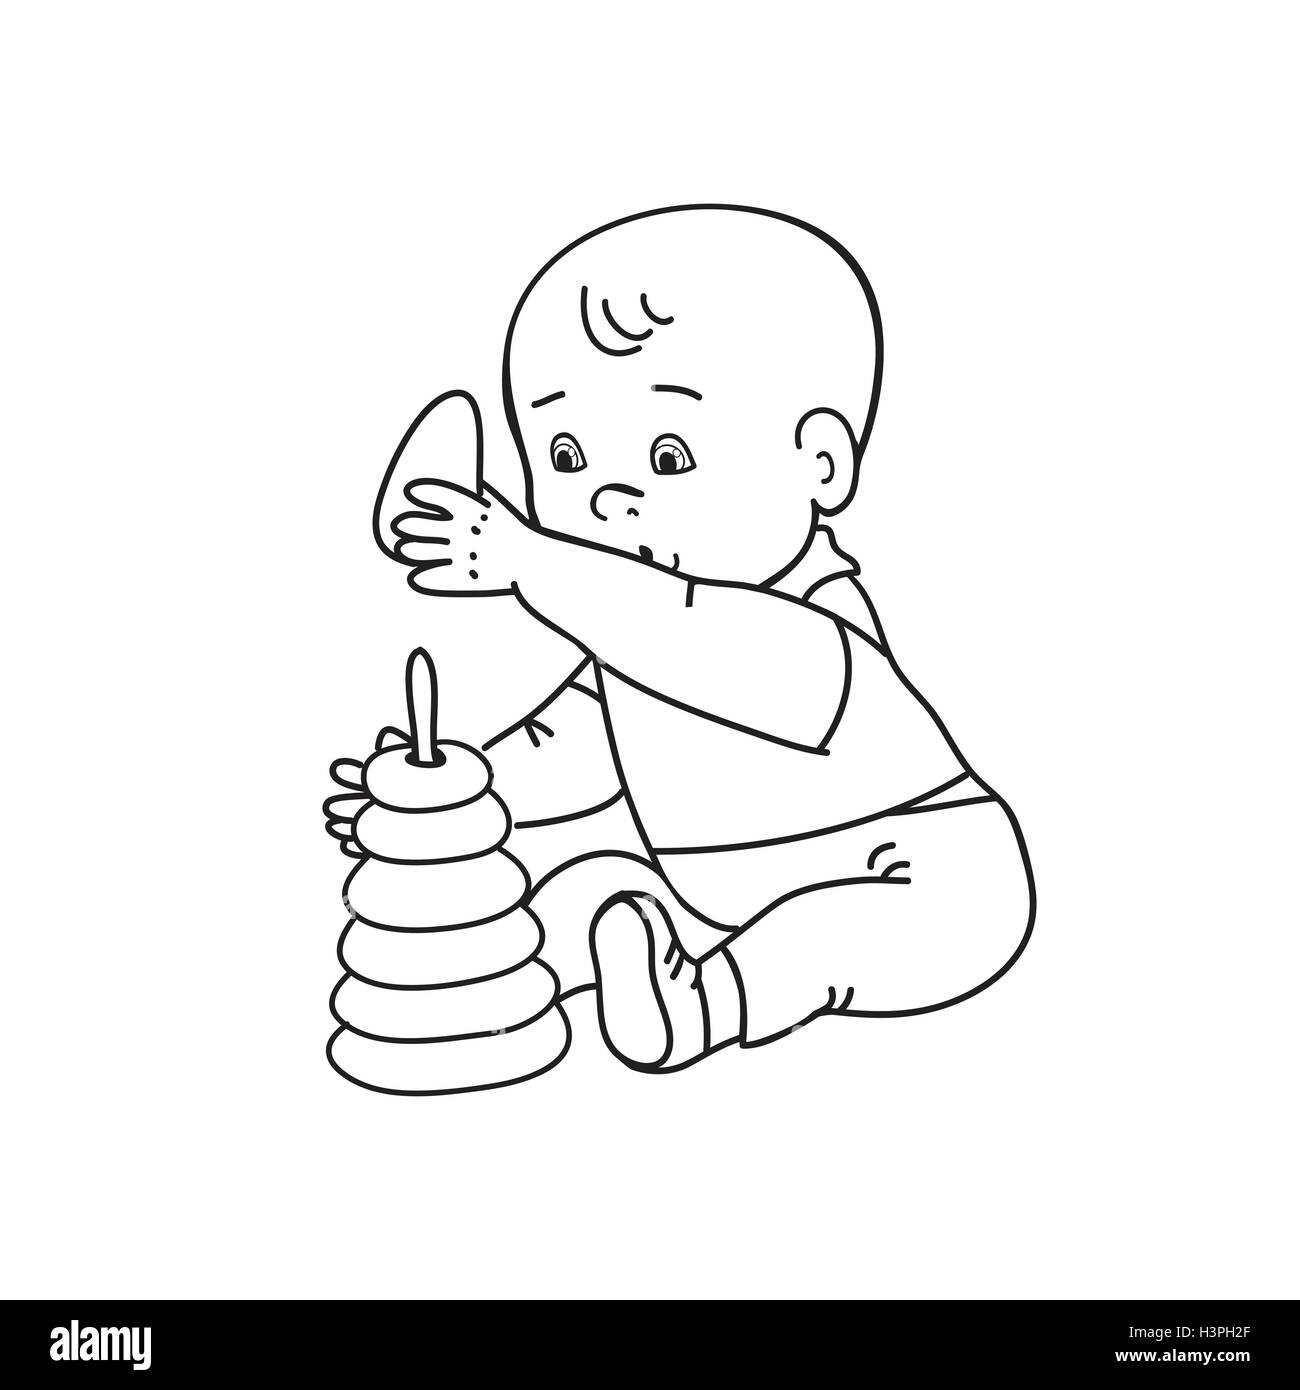 Baby drawing black and white stockfotos